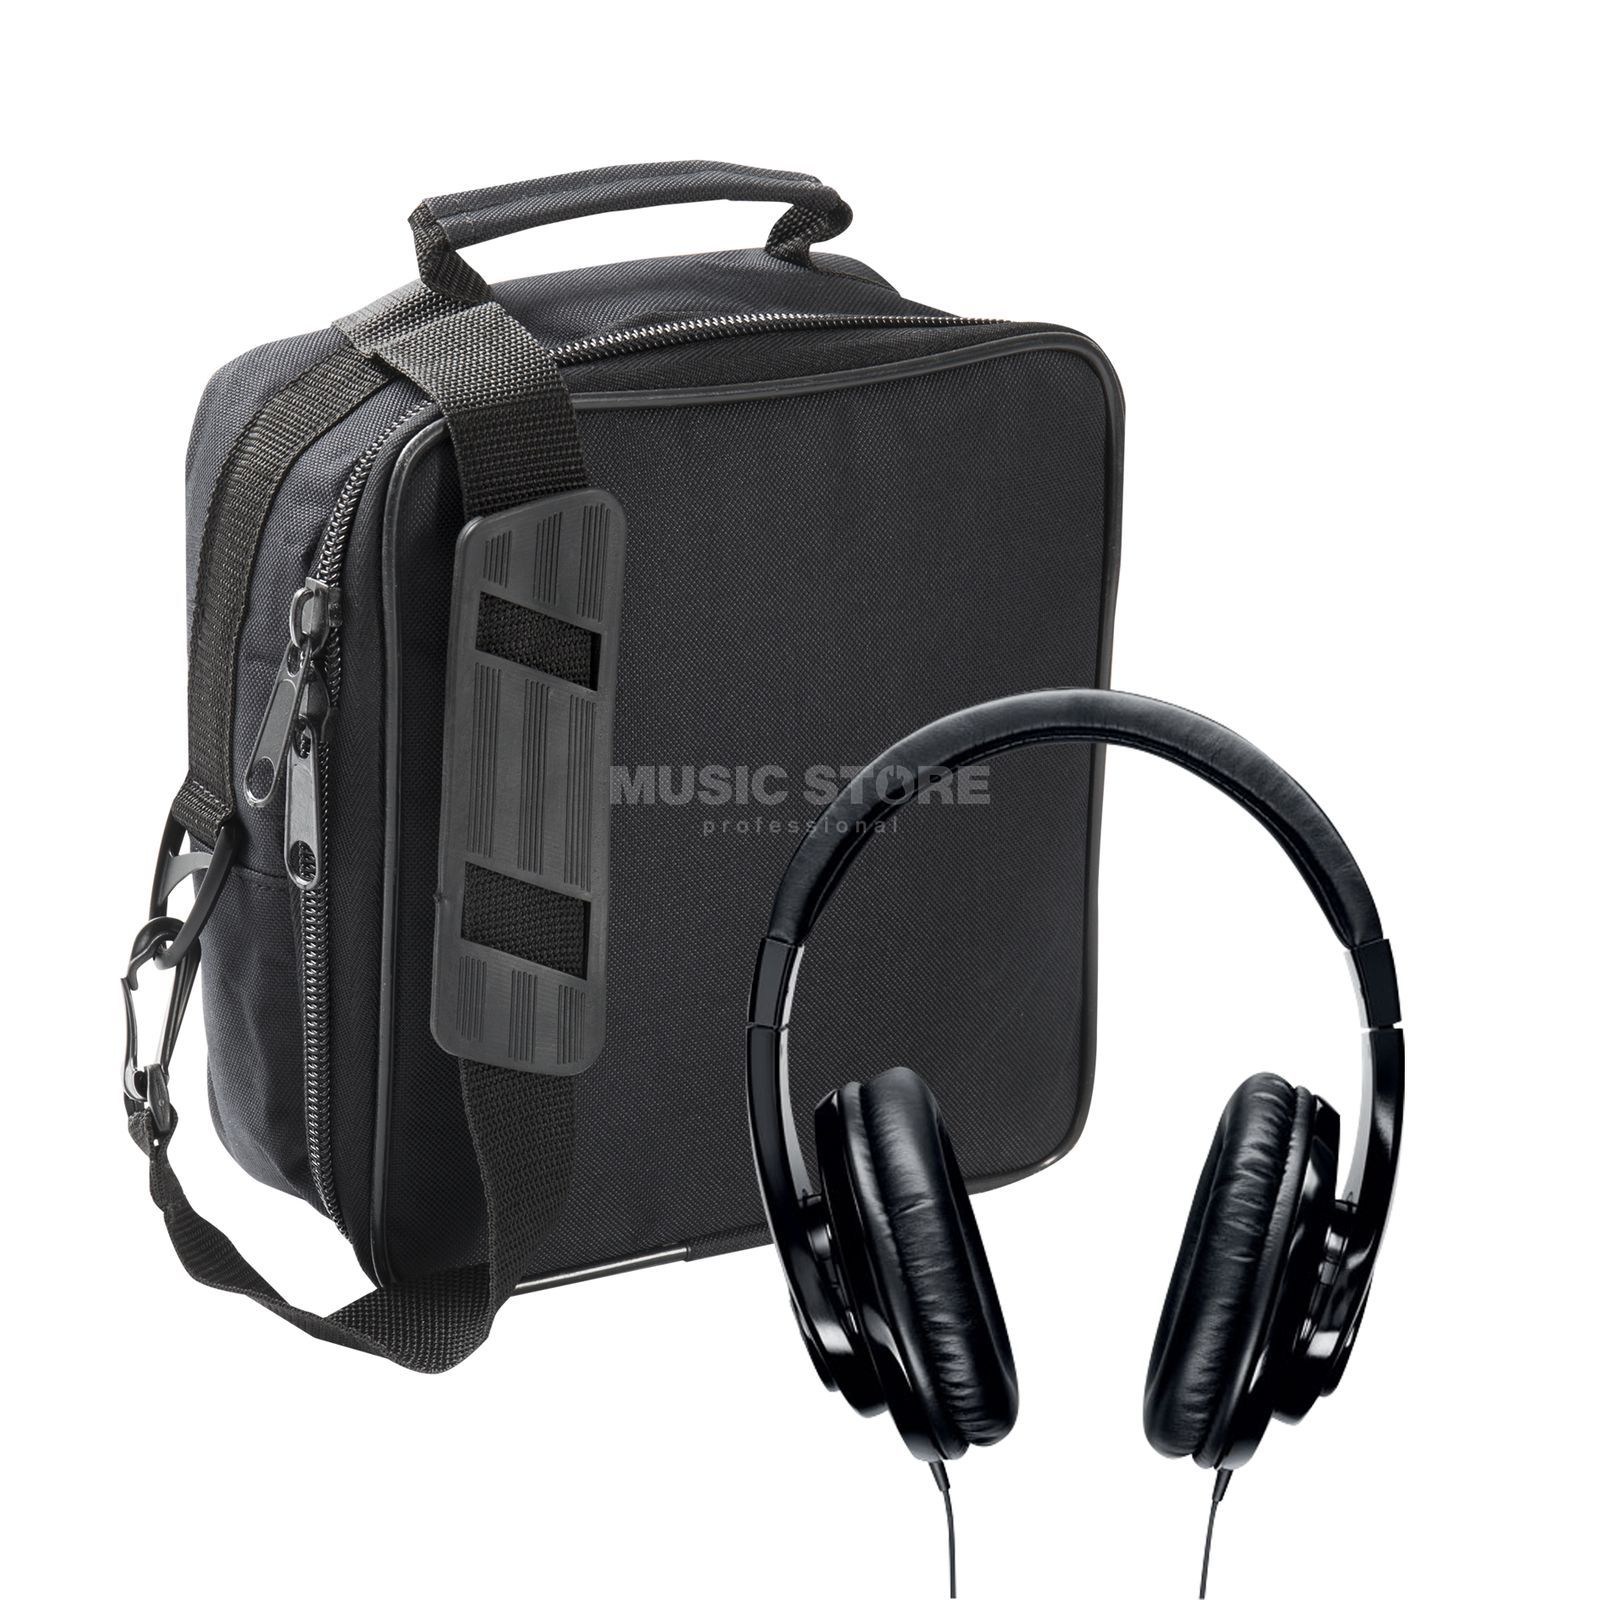 Shure SRH 240 + Bag - Set Product Image